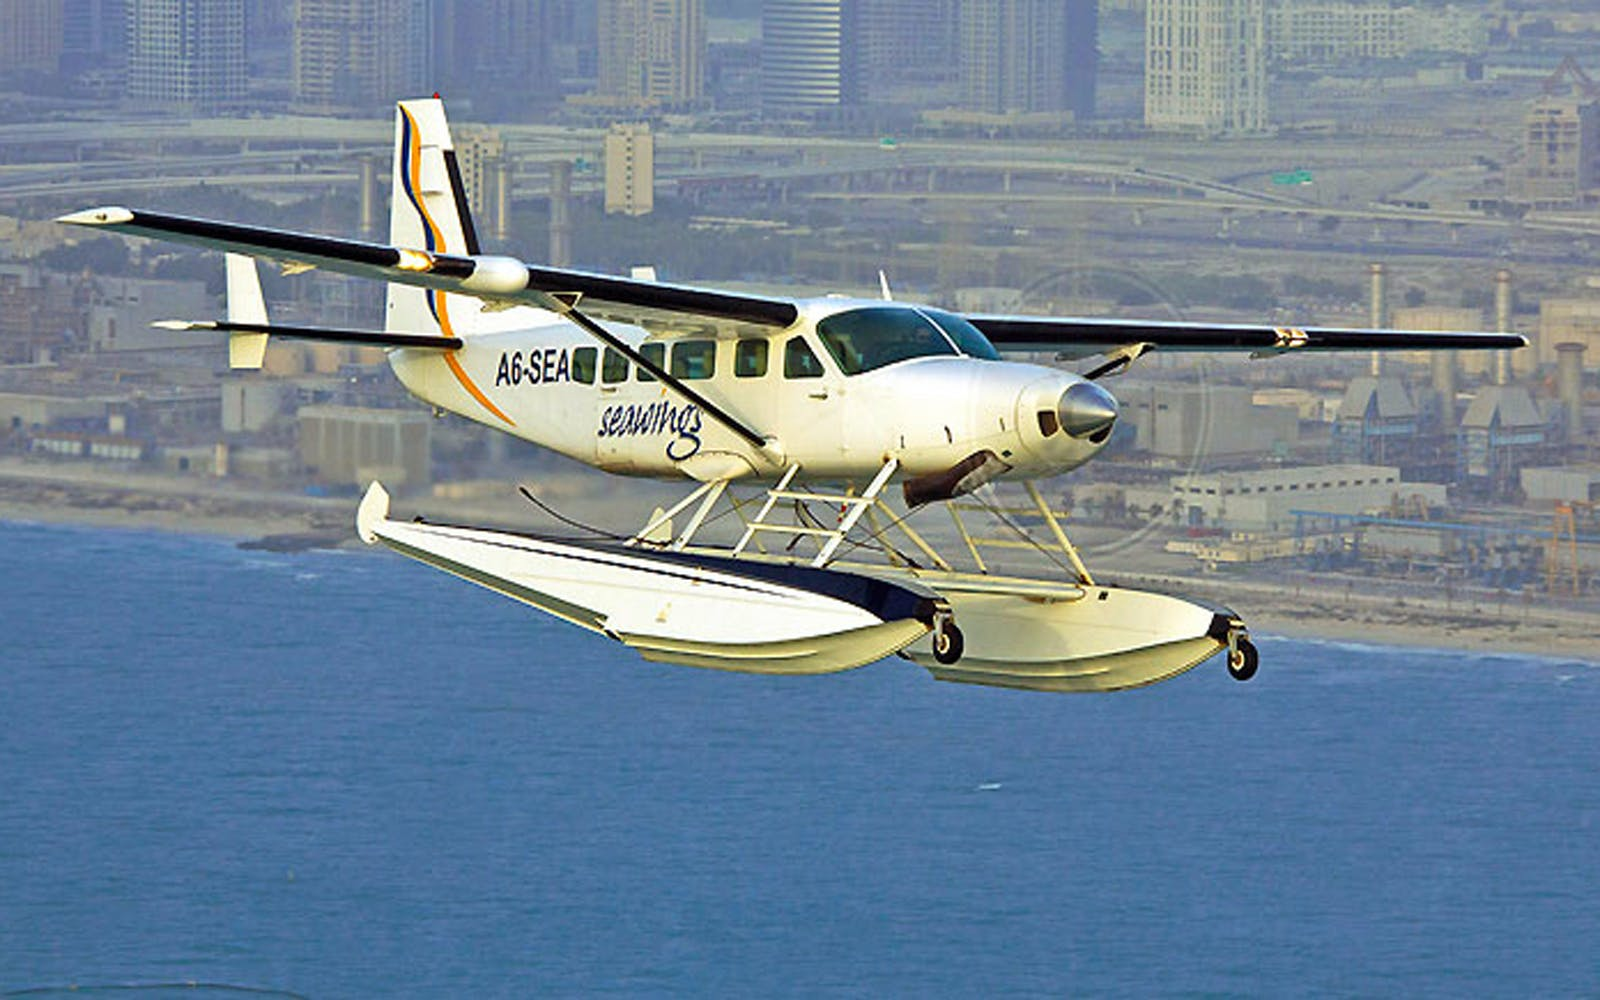 Seaplane Tour and Private Heritage Tour (RAK to Dubai)